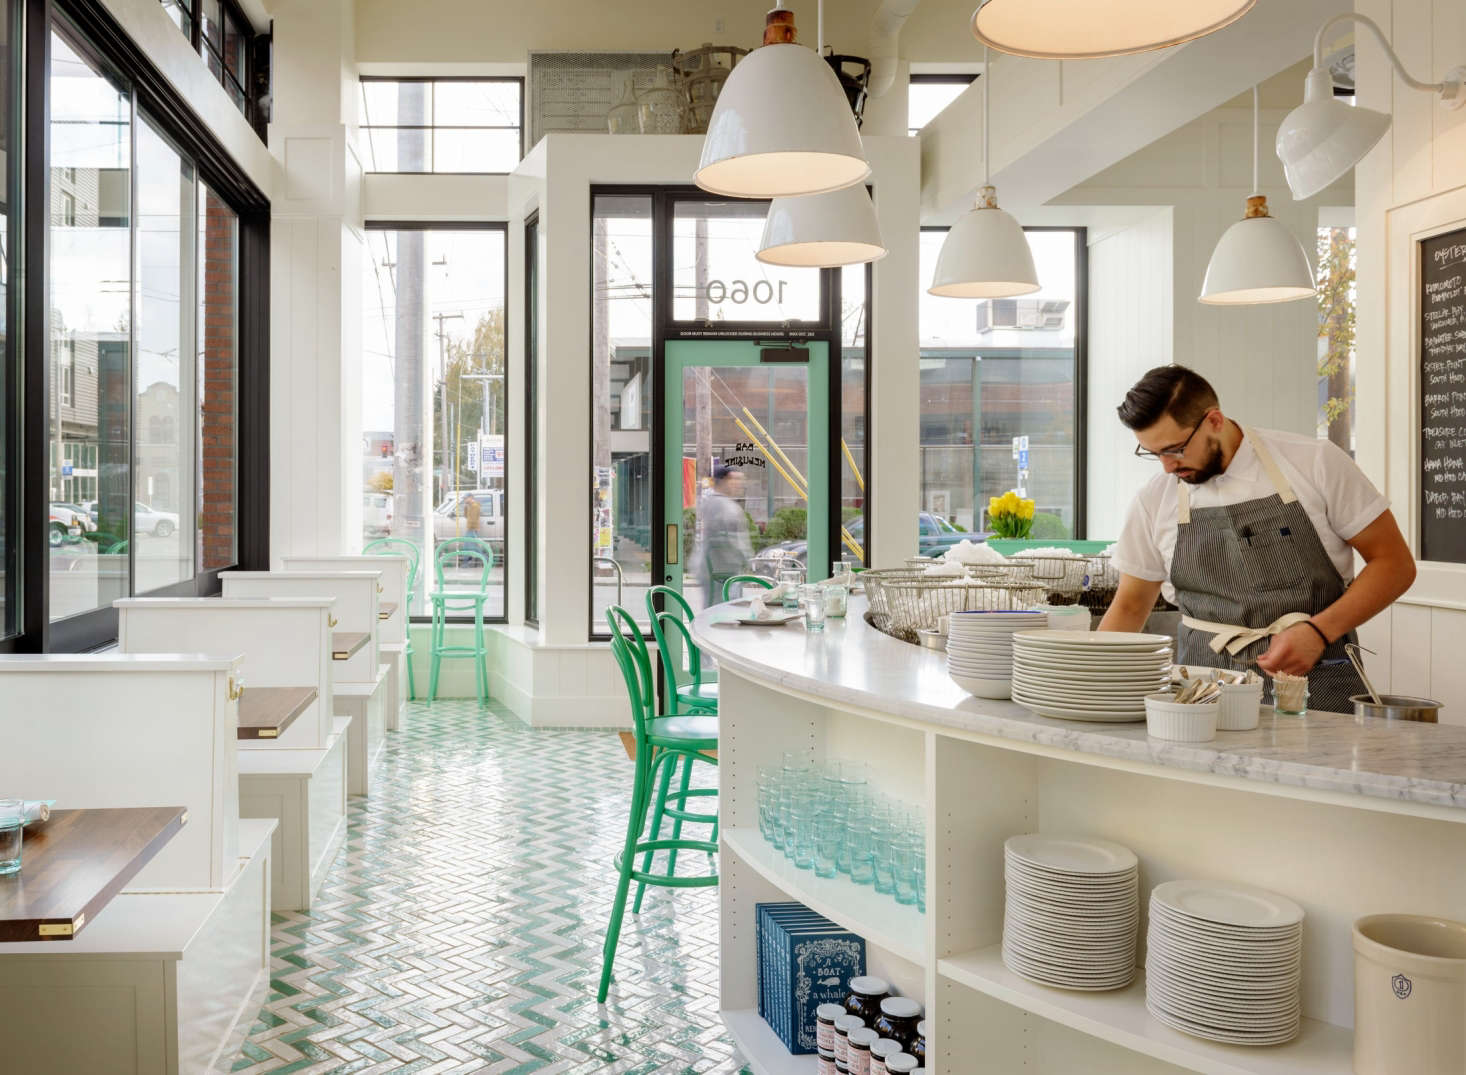 The color palette is green and white, with brass and walnut accents. The seafoam green is a nod to the menu's oceanic origins.